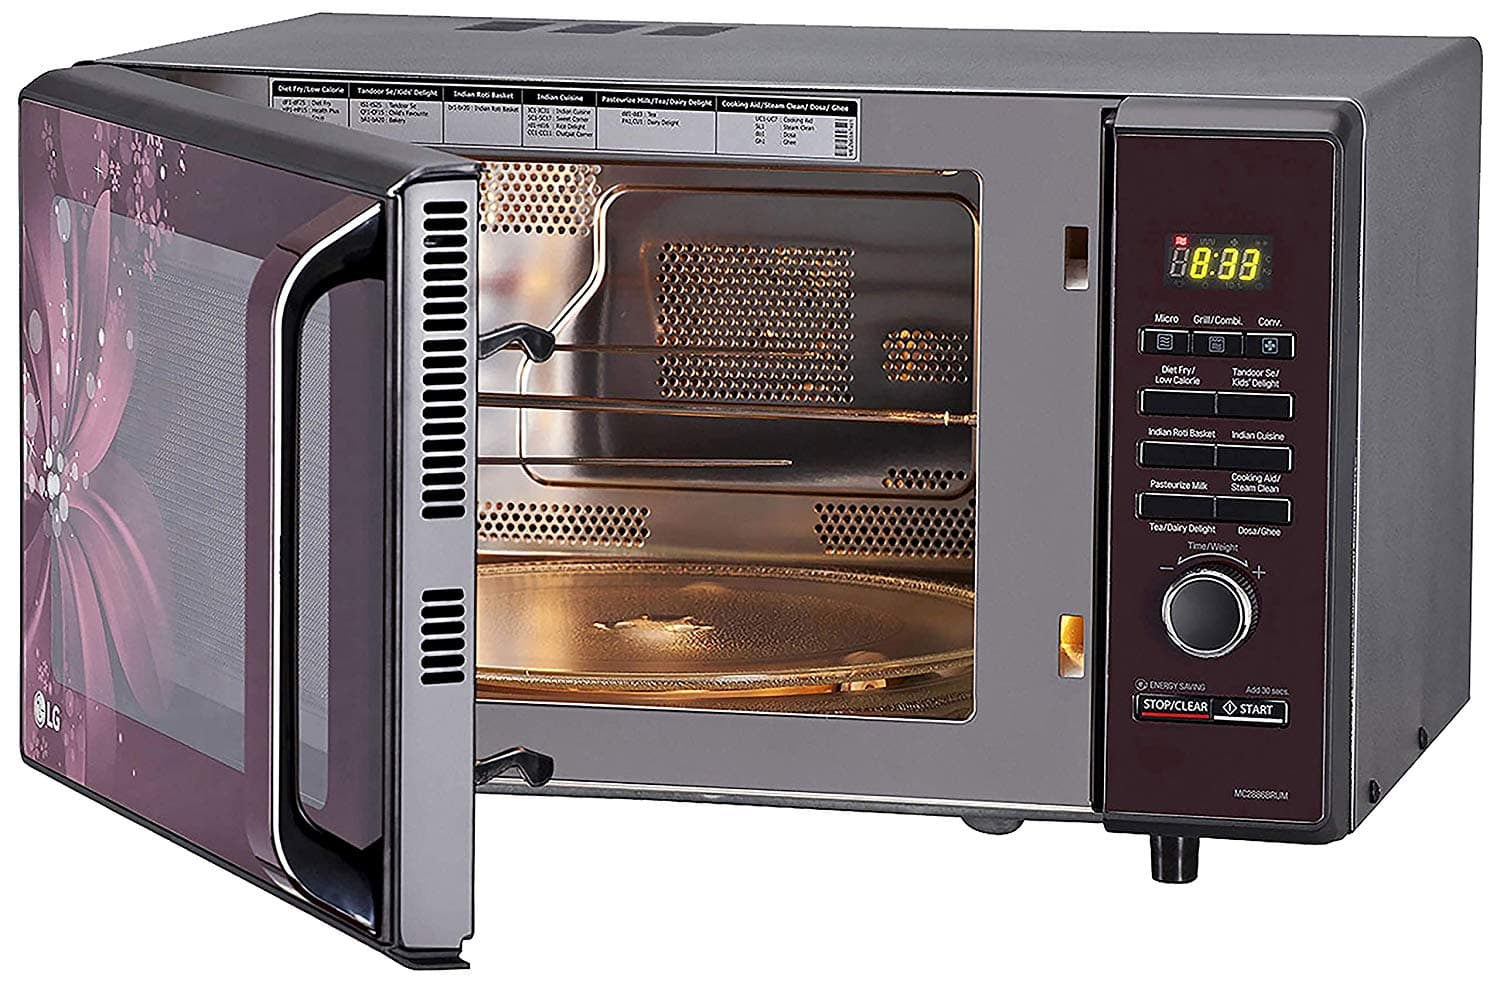 LG 28 L Convection Microwave Oven  Black)